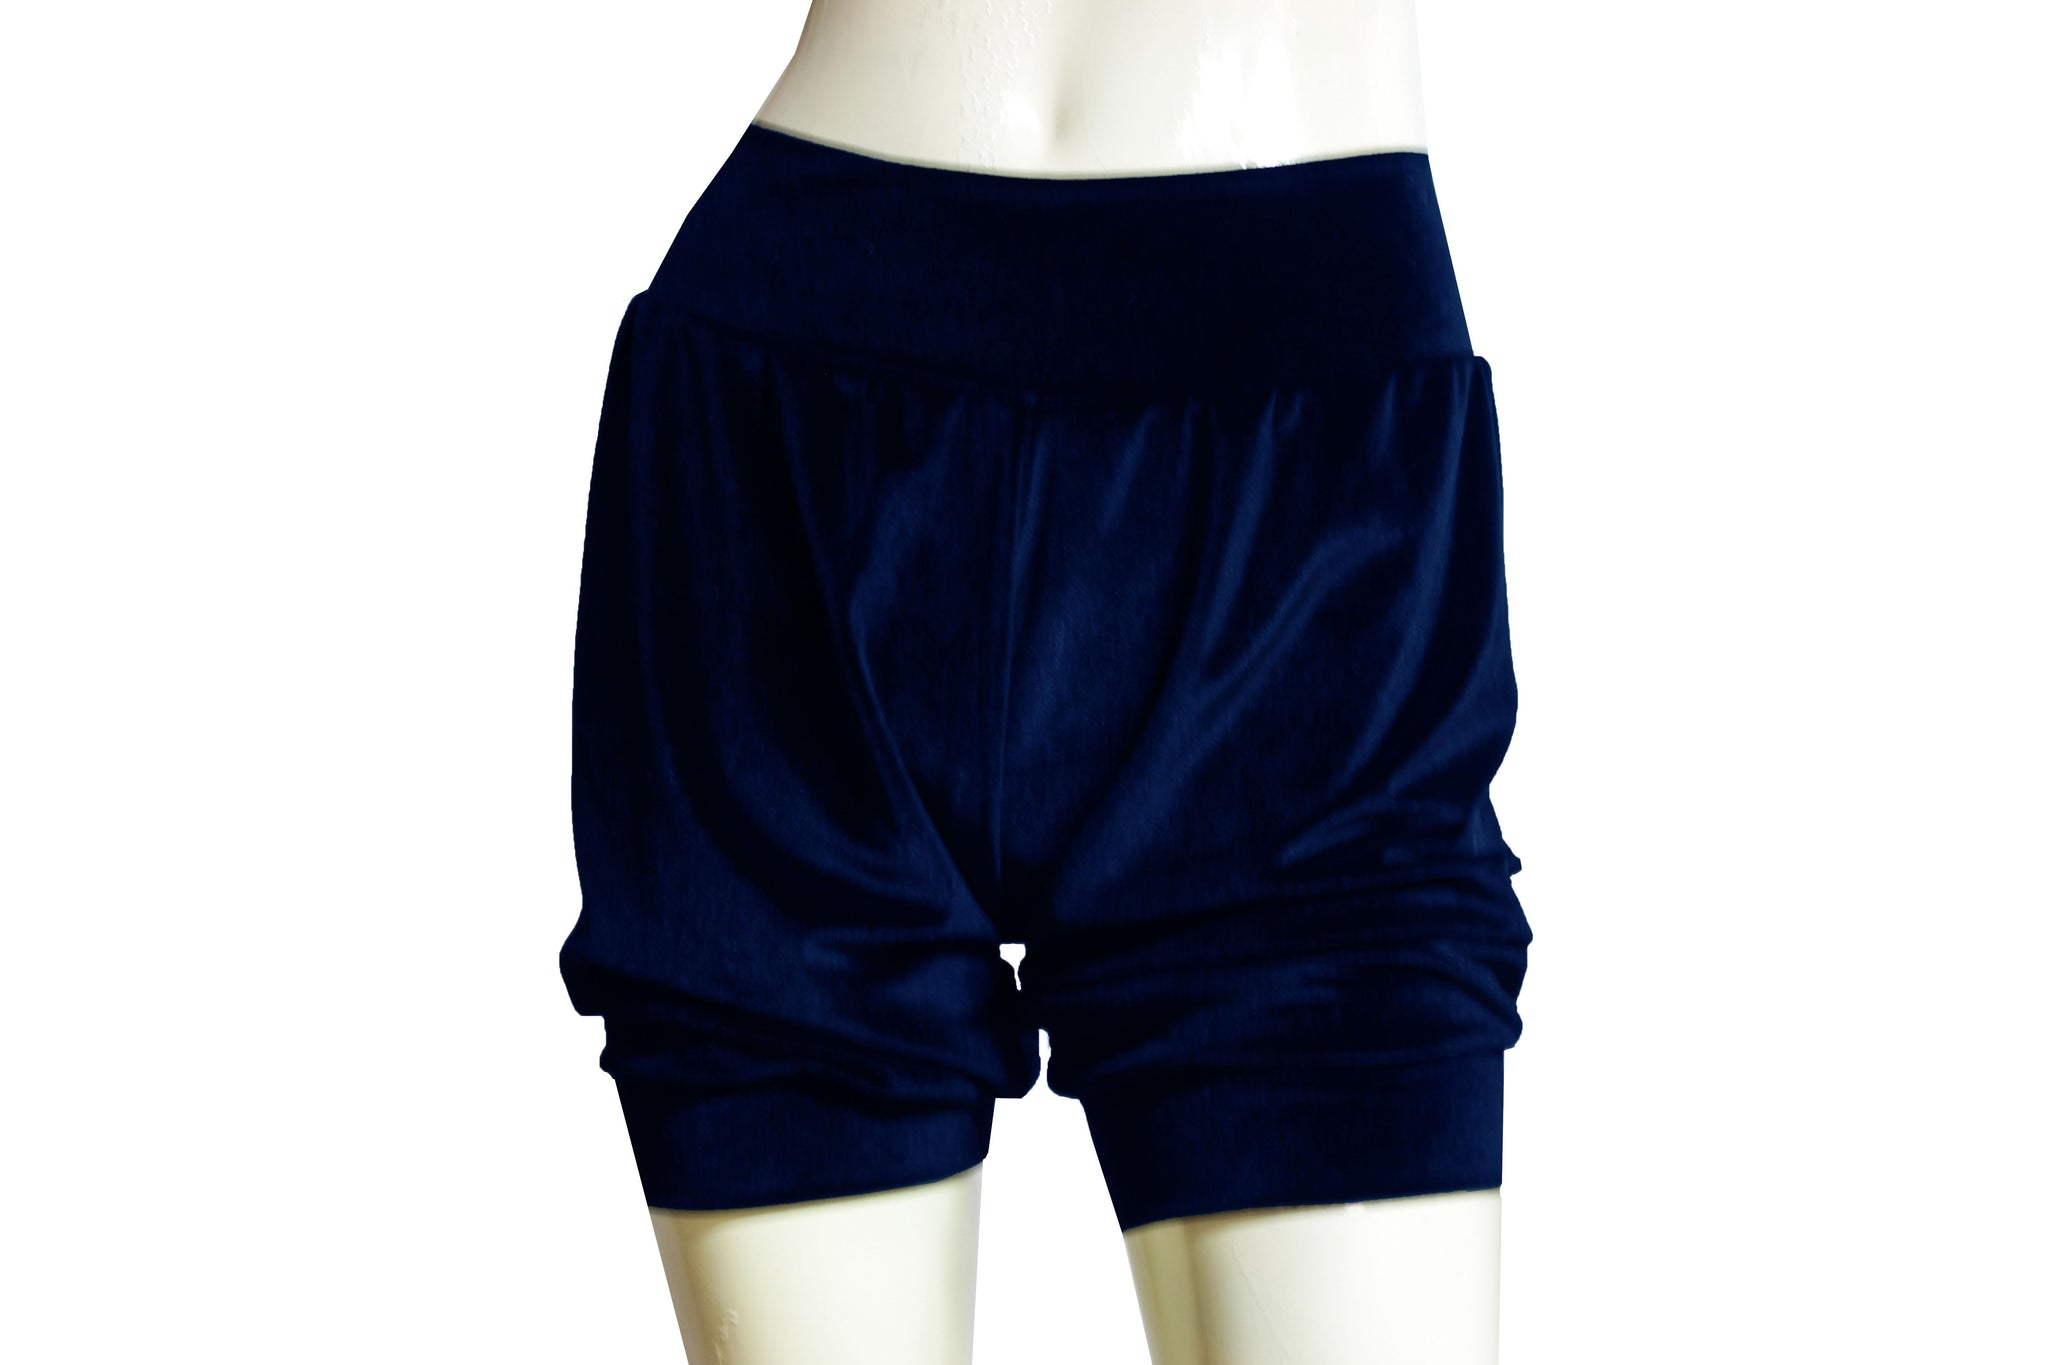 Navy blue shorts Velvet bloomers Ballet dance shorts Festival bottoms Rave party shorts